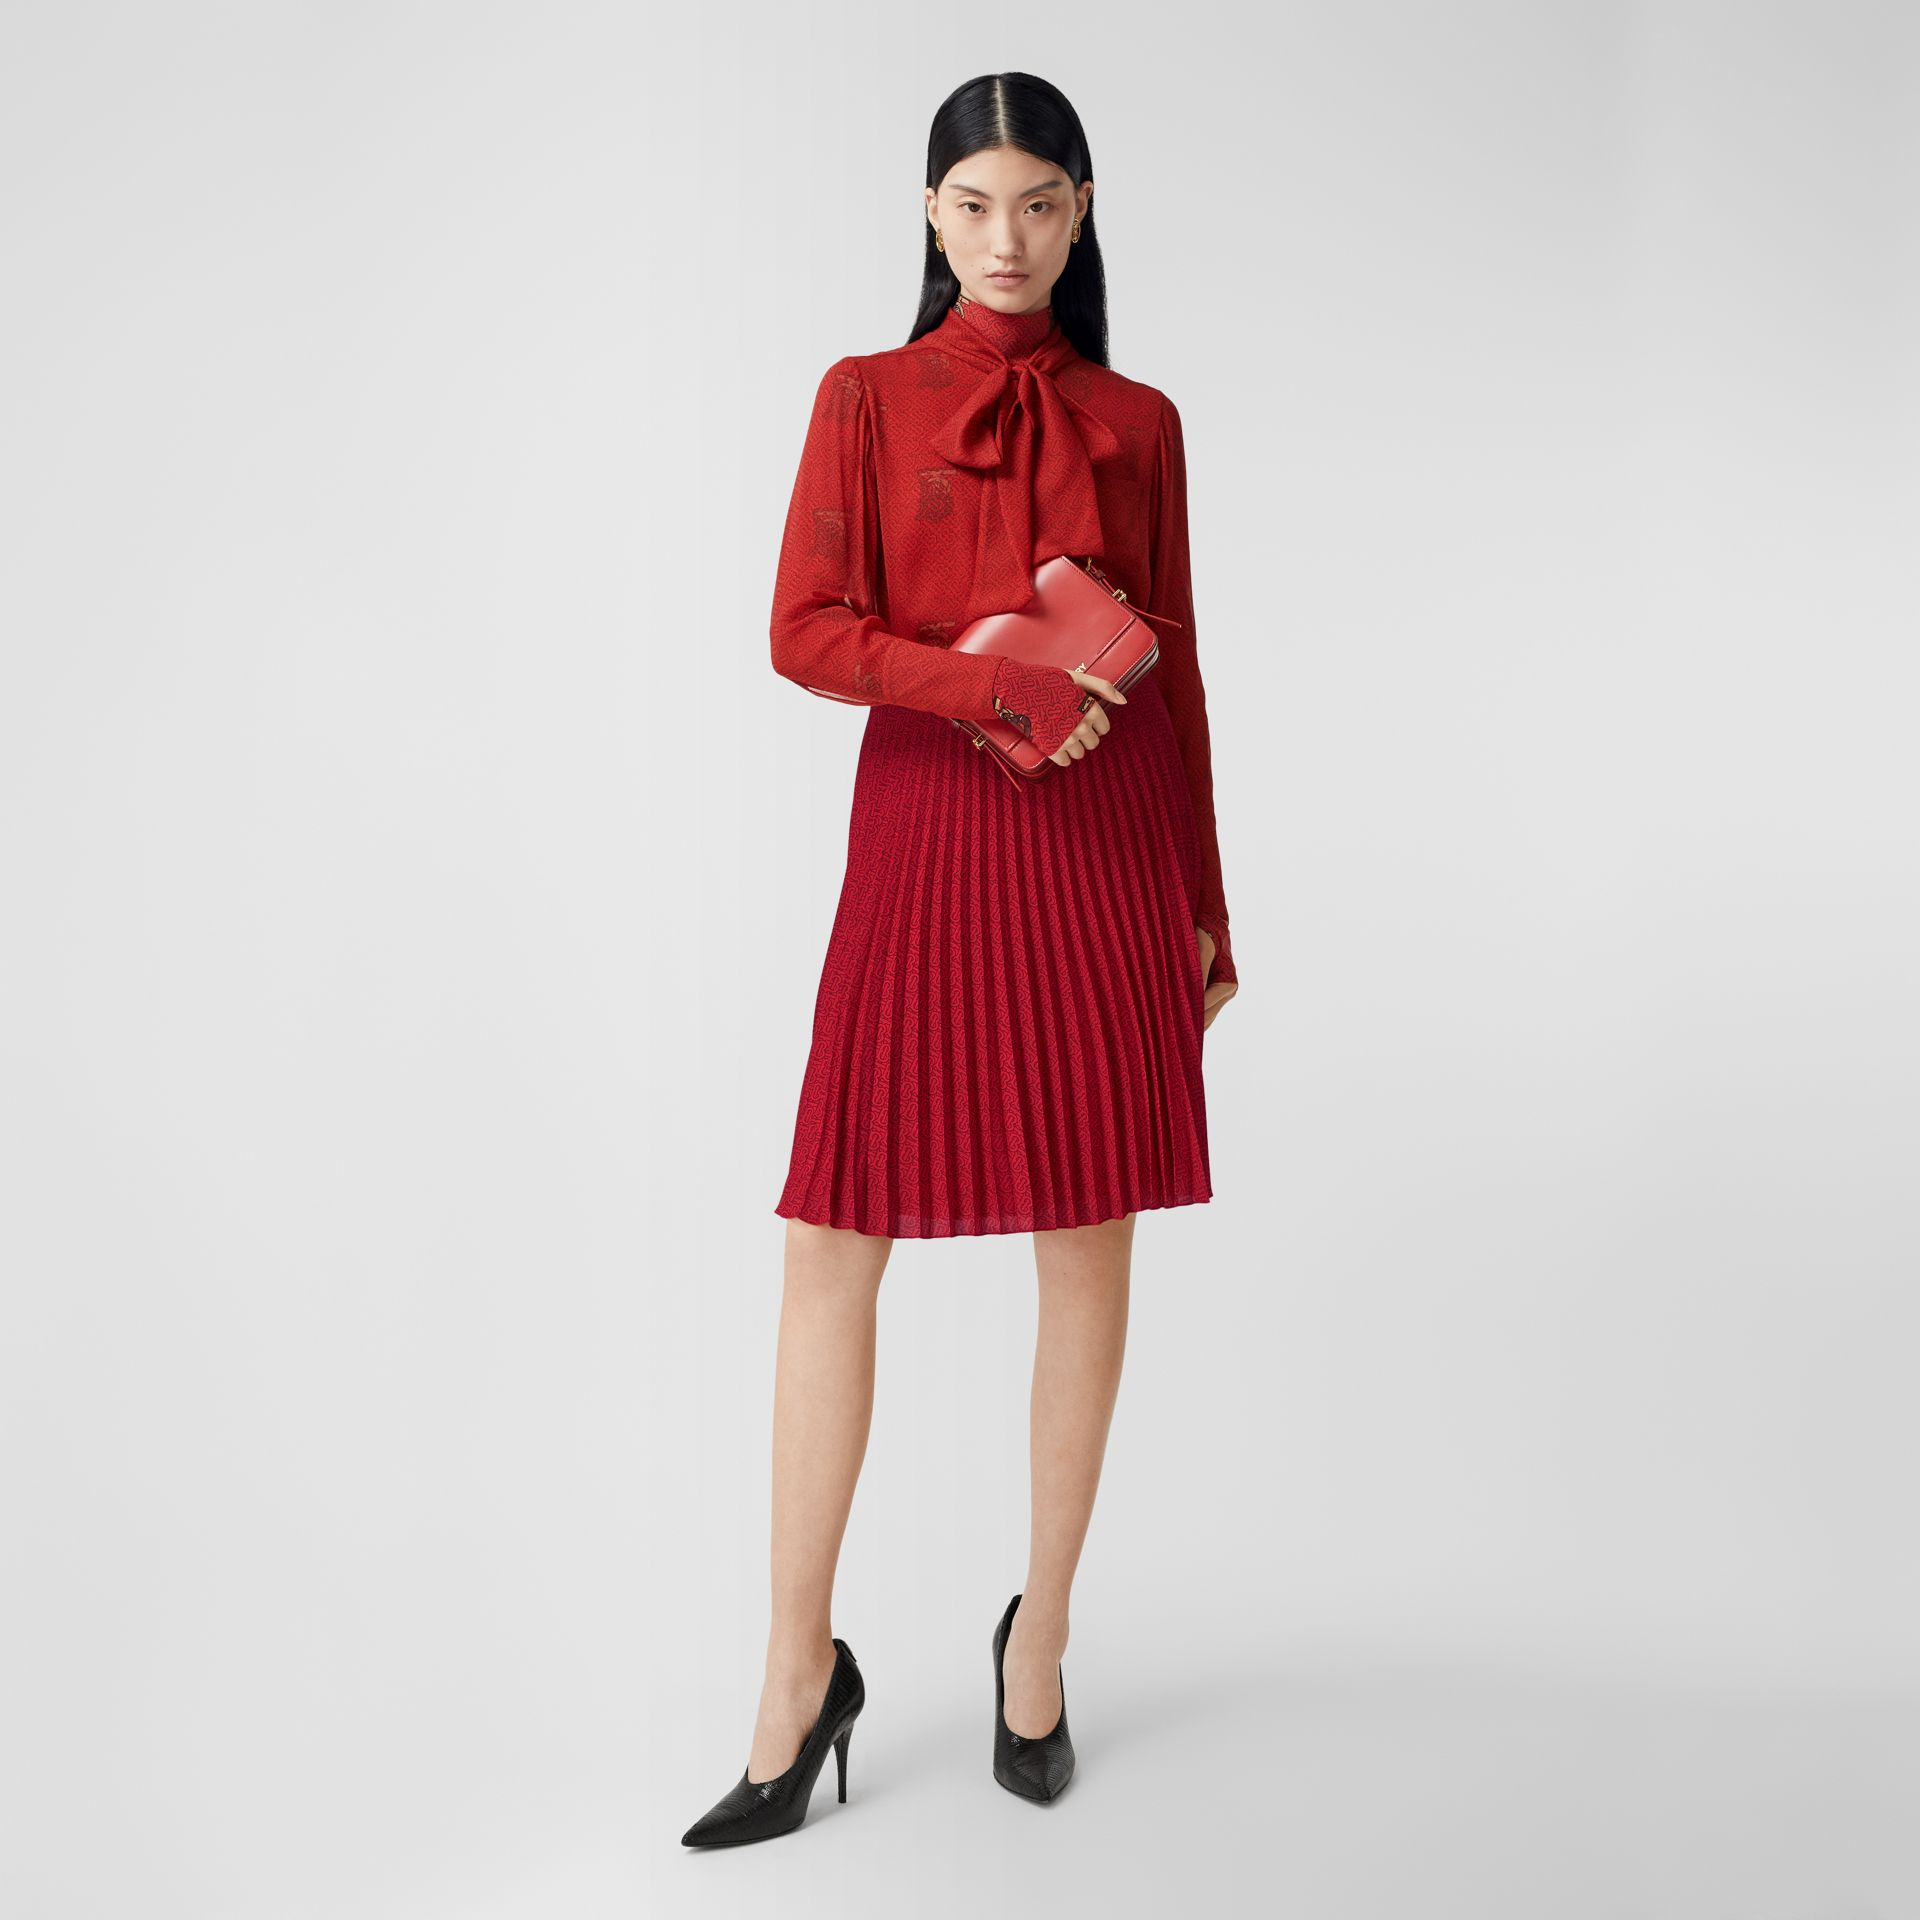 Monogram Print Pleated Skirt in Bright Red - Women | Burberry - gallery image 0